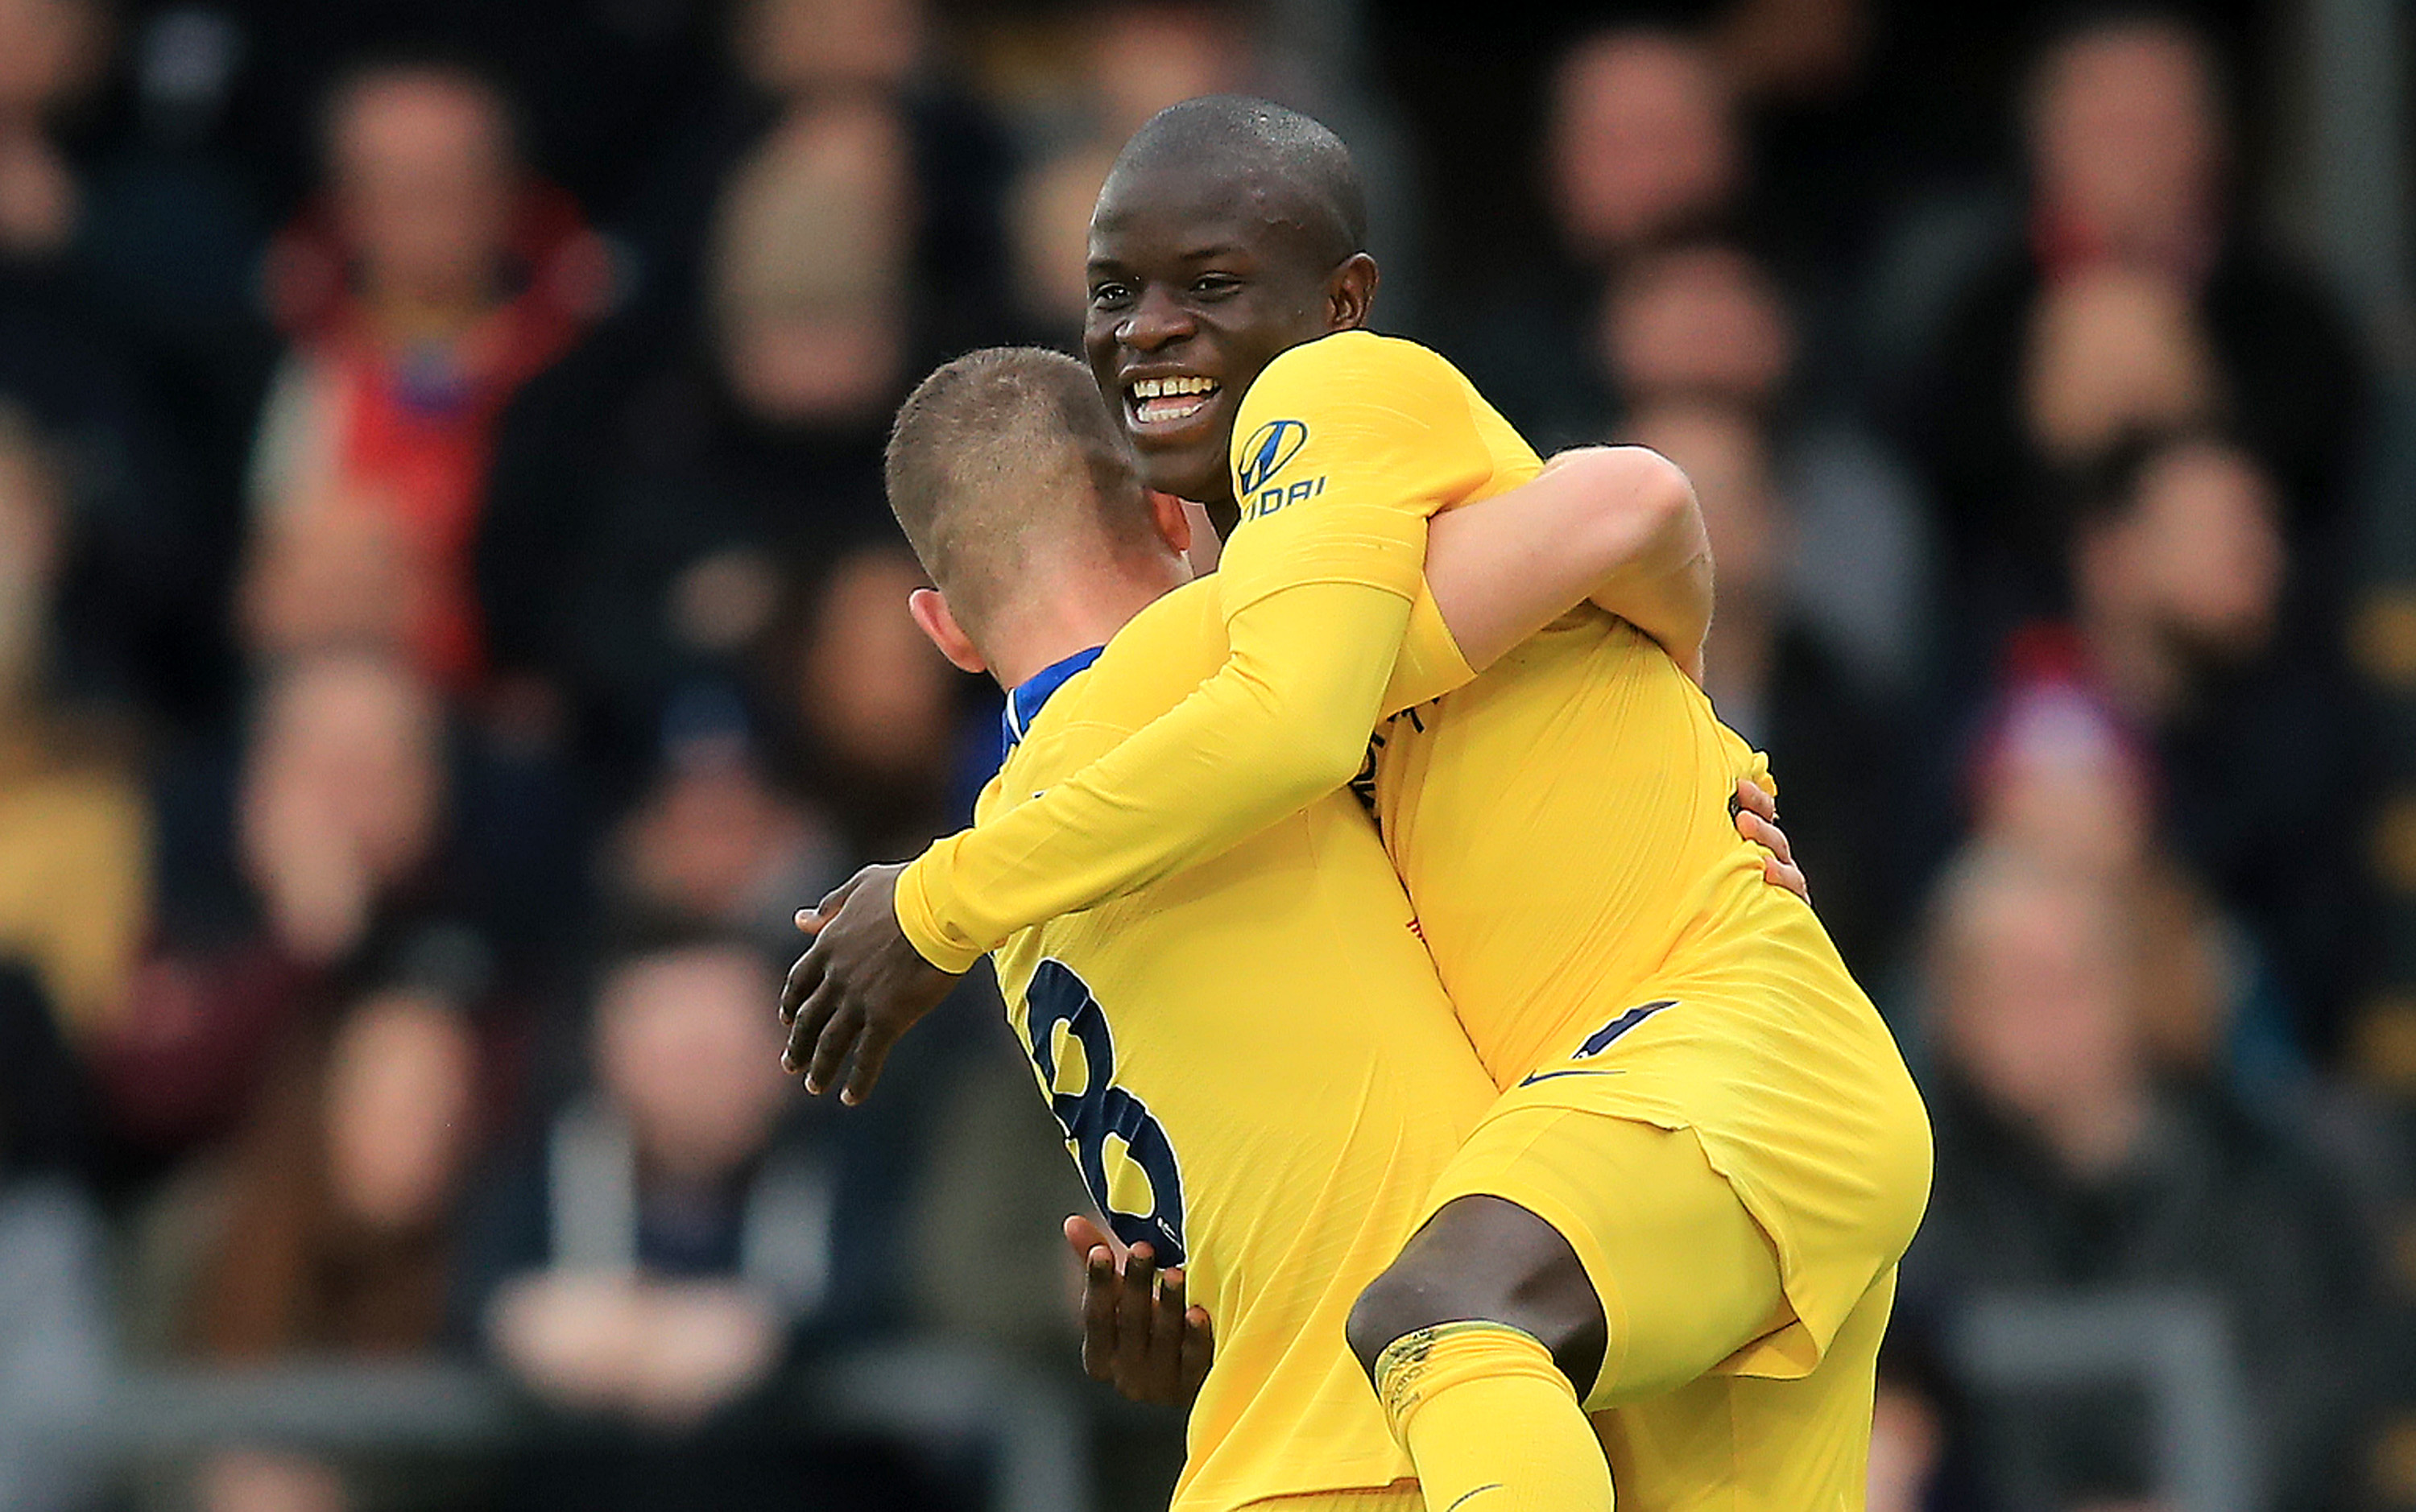 Real Madrid 'does not matter': Kanté remains fully committed to Chelsea